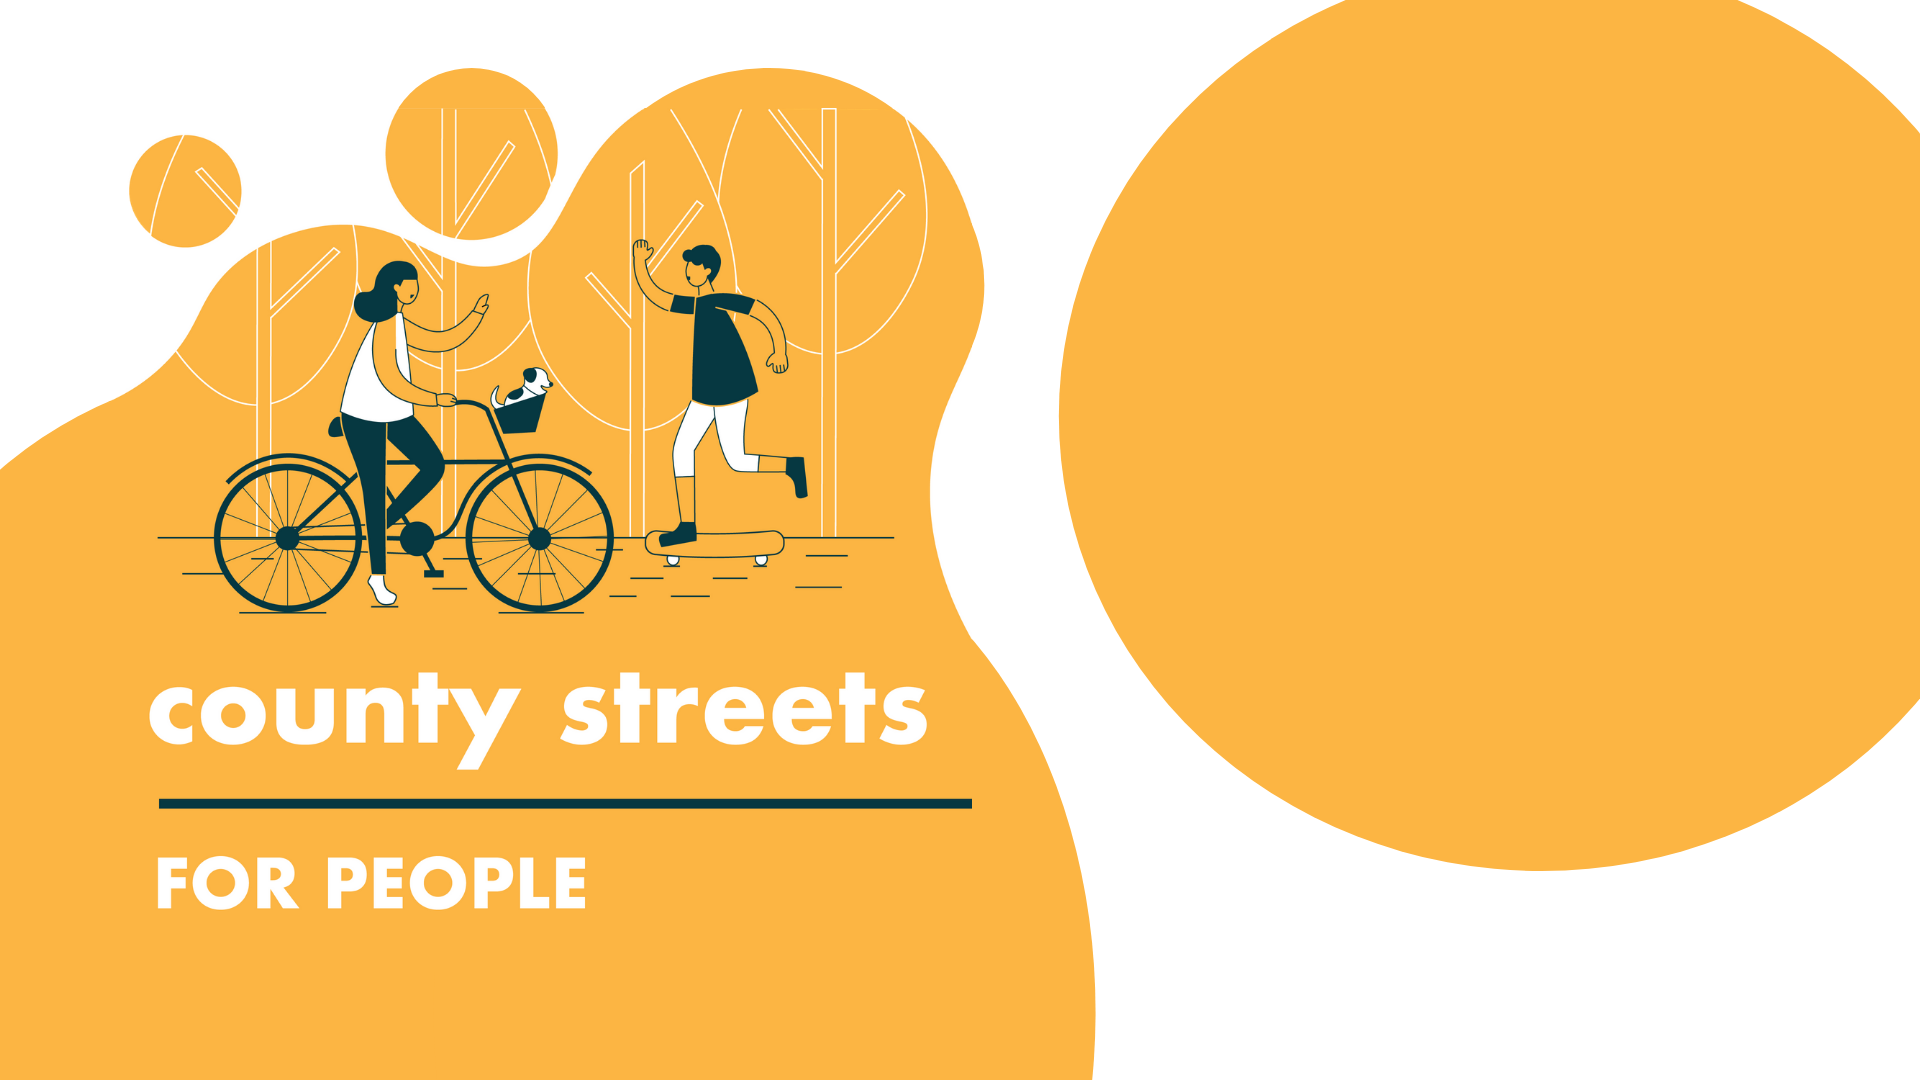 County Streets for People logo featuring a person biking and a person skateboarding about to high-five